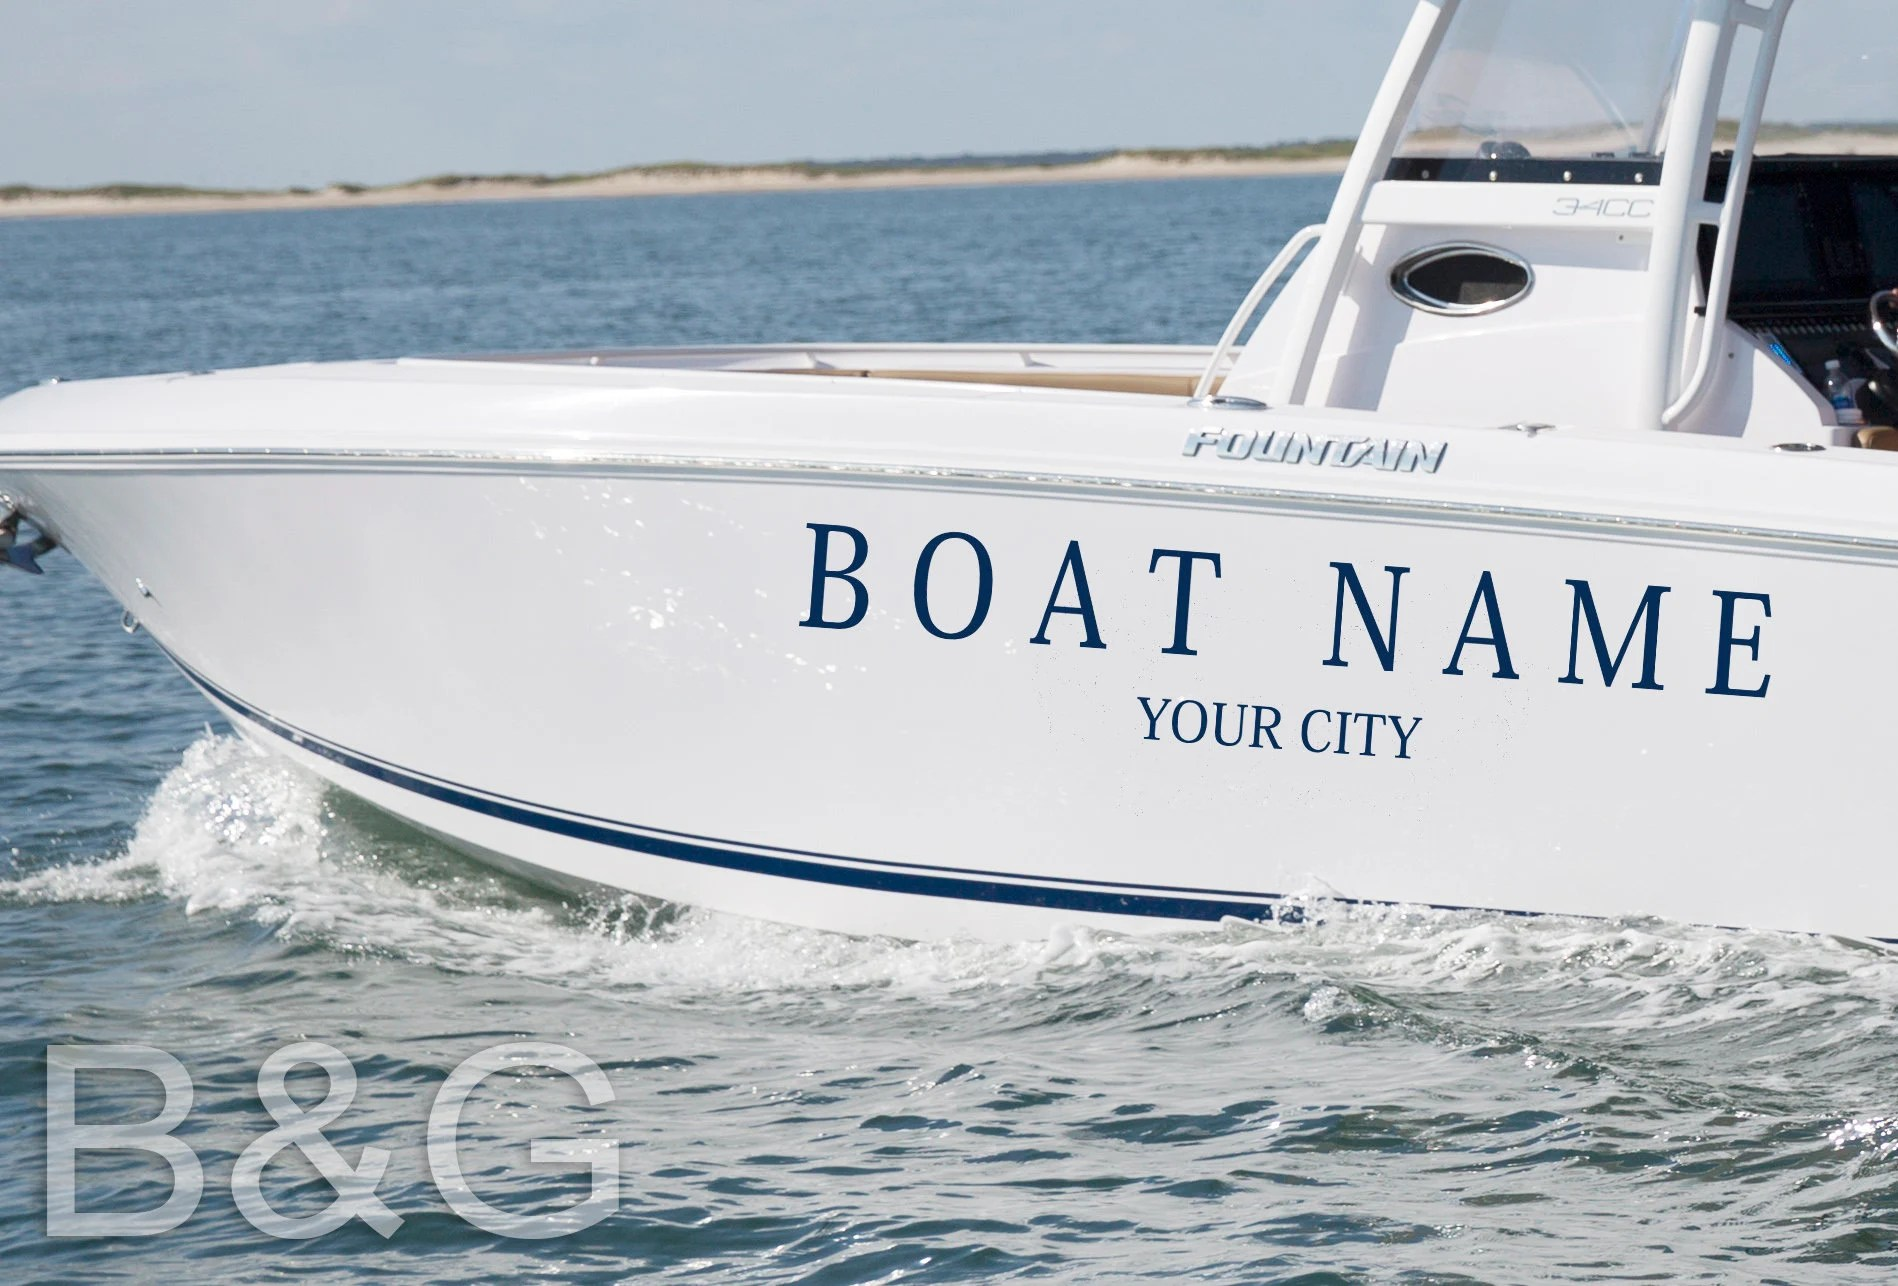 Custom Boat Name Decal  Boat name Personalized Decals  image 2